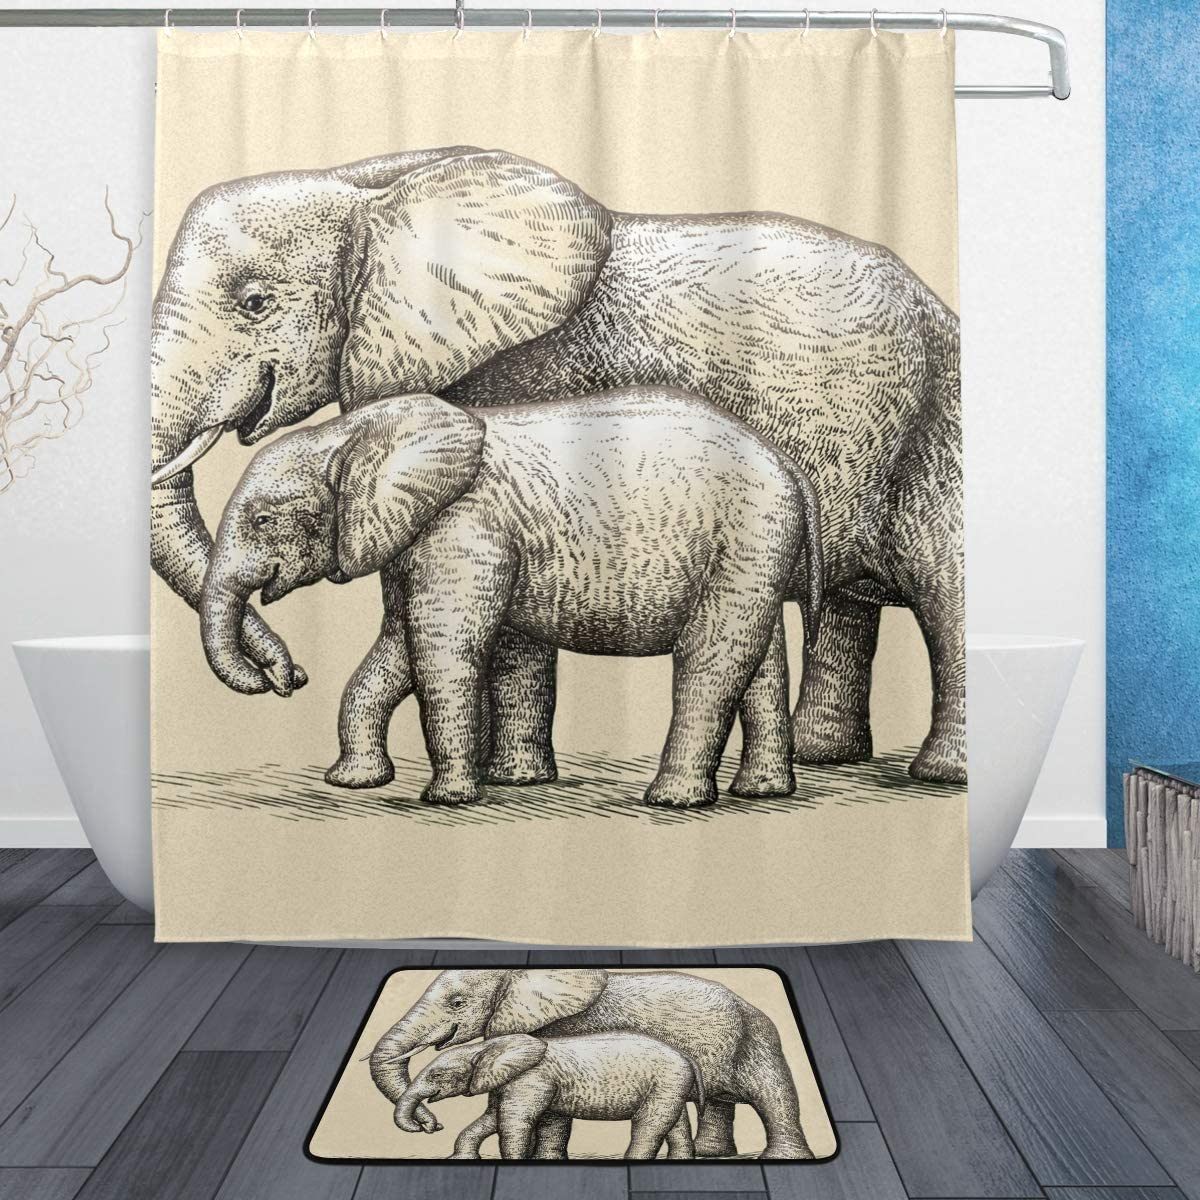 Elephant Mother with Baby Shower Curtain Set Bathroom Bathroom  Accessories 71/""